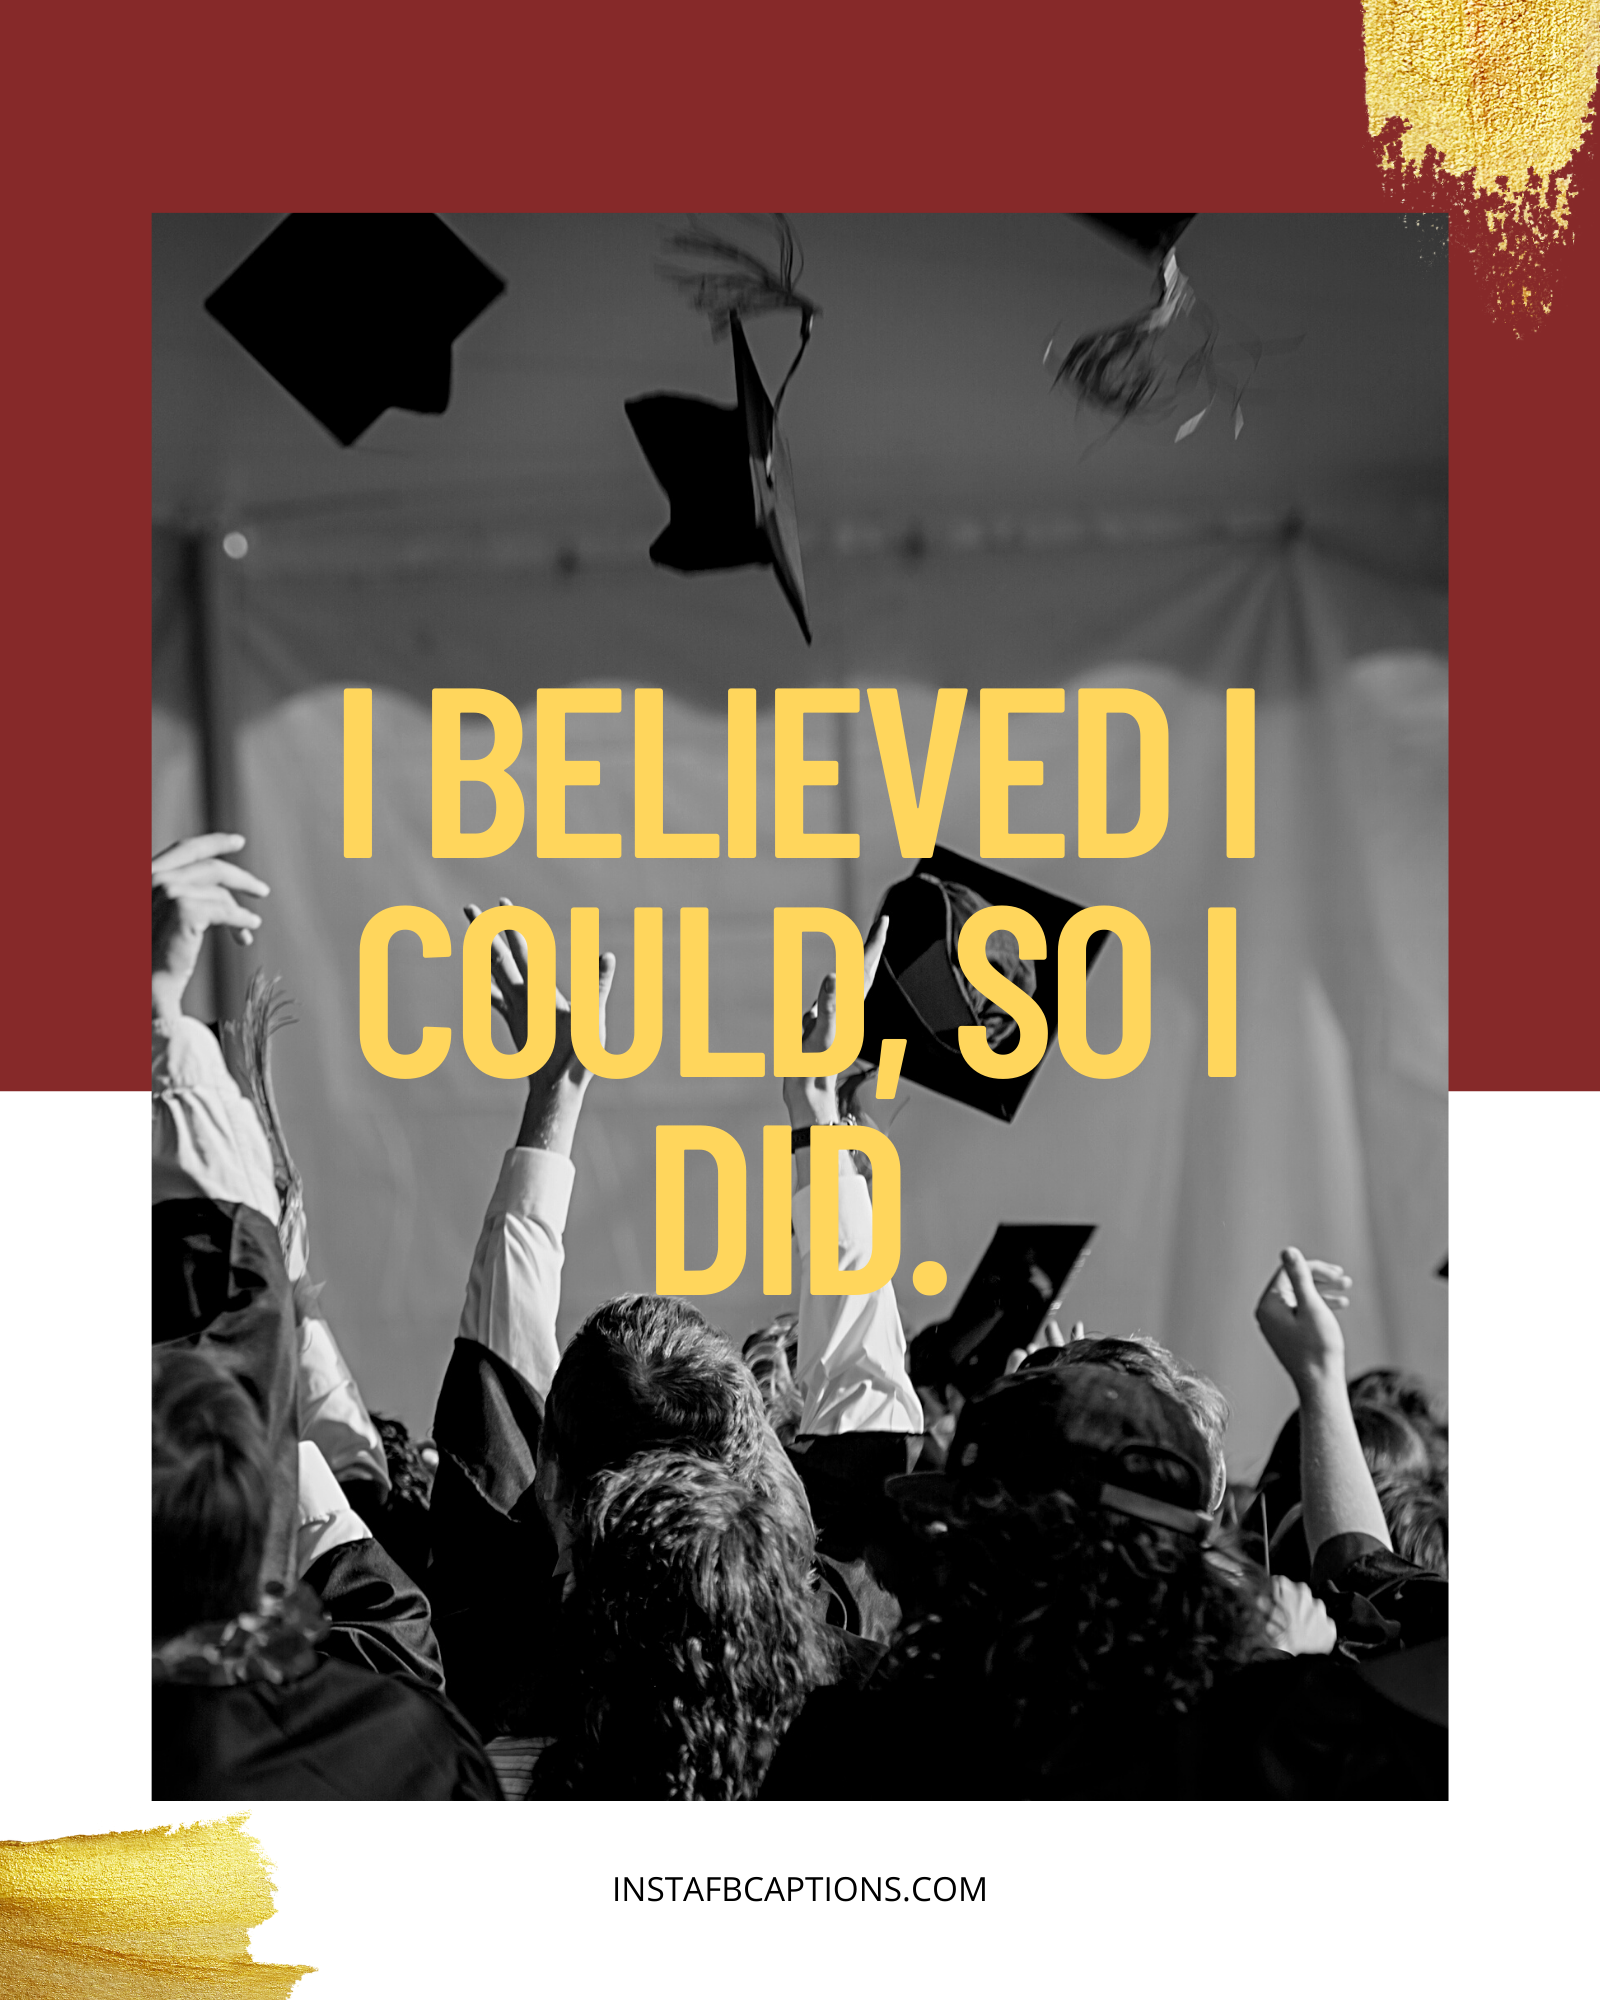 Proud And Inspirational Captions For Last Day Of College Posts  - Proud and Inspirational Captions for Last Day of College Posts - 99+ Captions for Last Day of College Instagram Posts in 2021